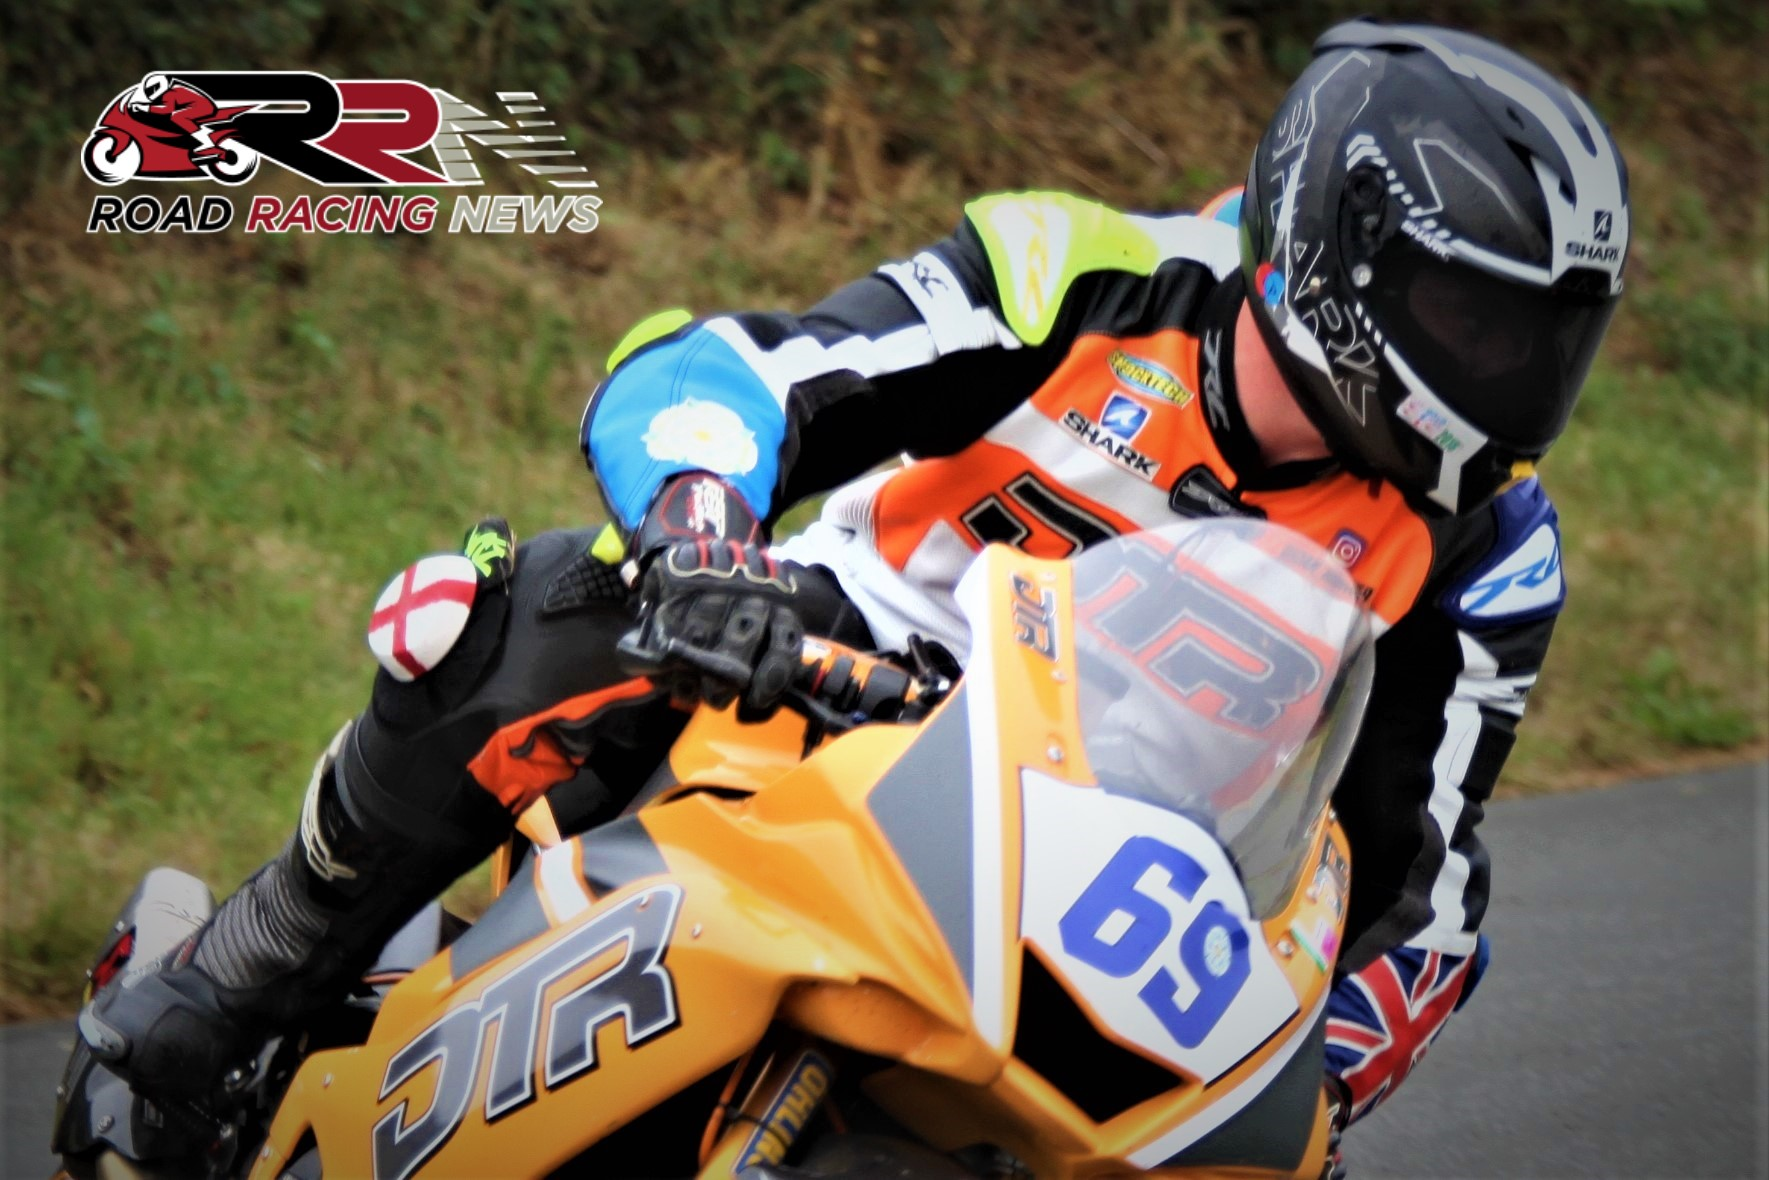 Barry Sheene Classic – Driffield's Harrison Steps Up Scarborough Pace